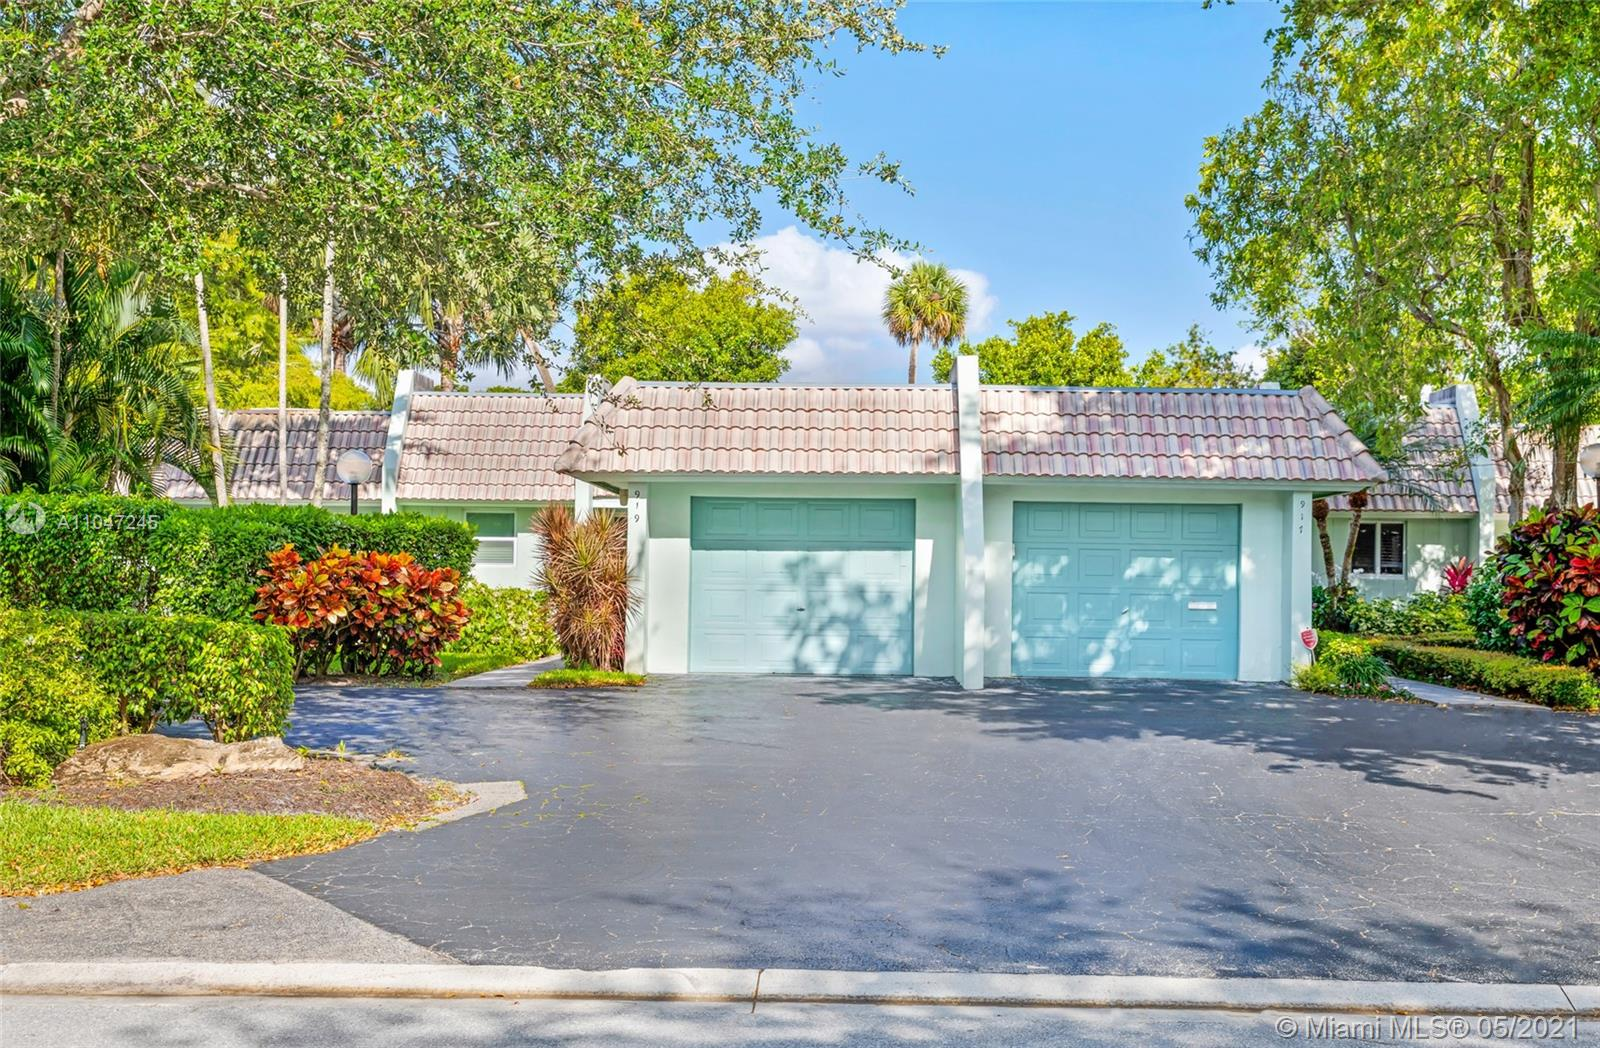 UNIQUE PATIO HOME IN PALM AIRE FOR SALE. 3 BEDROOM 3 FULL BATHS FULLY RENOVATED PROPERTY FEATURING A SPACOUS OPEN LAYOUT, CORNER UNIT, LAMINATE FLOOR, OPEN KITCHEN WITH QUARZ COUNTER TOP , SS APPLIANCES, , HIGH IMPACT WINDOWS THROUGHOUT THE HOUSE , ELECTRIC GENERATOR, OUTDOOR SPA. EXCELLENT COMMUNITY PETS FRIENDLY MAINTANCE INCLUDED, ROOF, WATER, TRASH REMOVAL, BASIC CABLE, PEST CONTROL, SECURITY PATROL. ASSOC REQUIRED 20% DOWN PAYMENT.MINIMUM CREDIT SCORE OF 700 OR HIGHER. PROSPECTIVE SELLER MUST SEND AS-IS OFFER WITH DU LETTER (ASK MORTGAGE BROKER OR LOAN OFFICER FOR MORE DETAILS) PROPERTY MANAGEMENT OFFICE CAMPBELL.